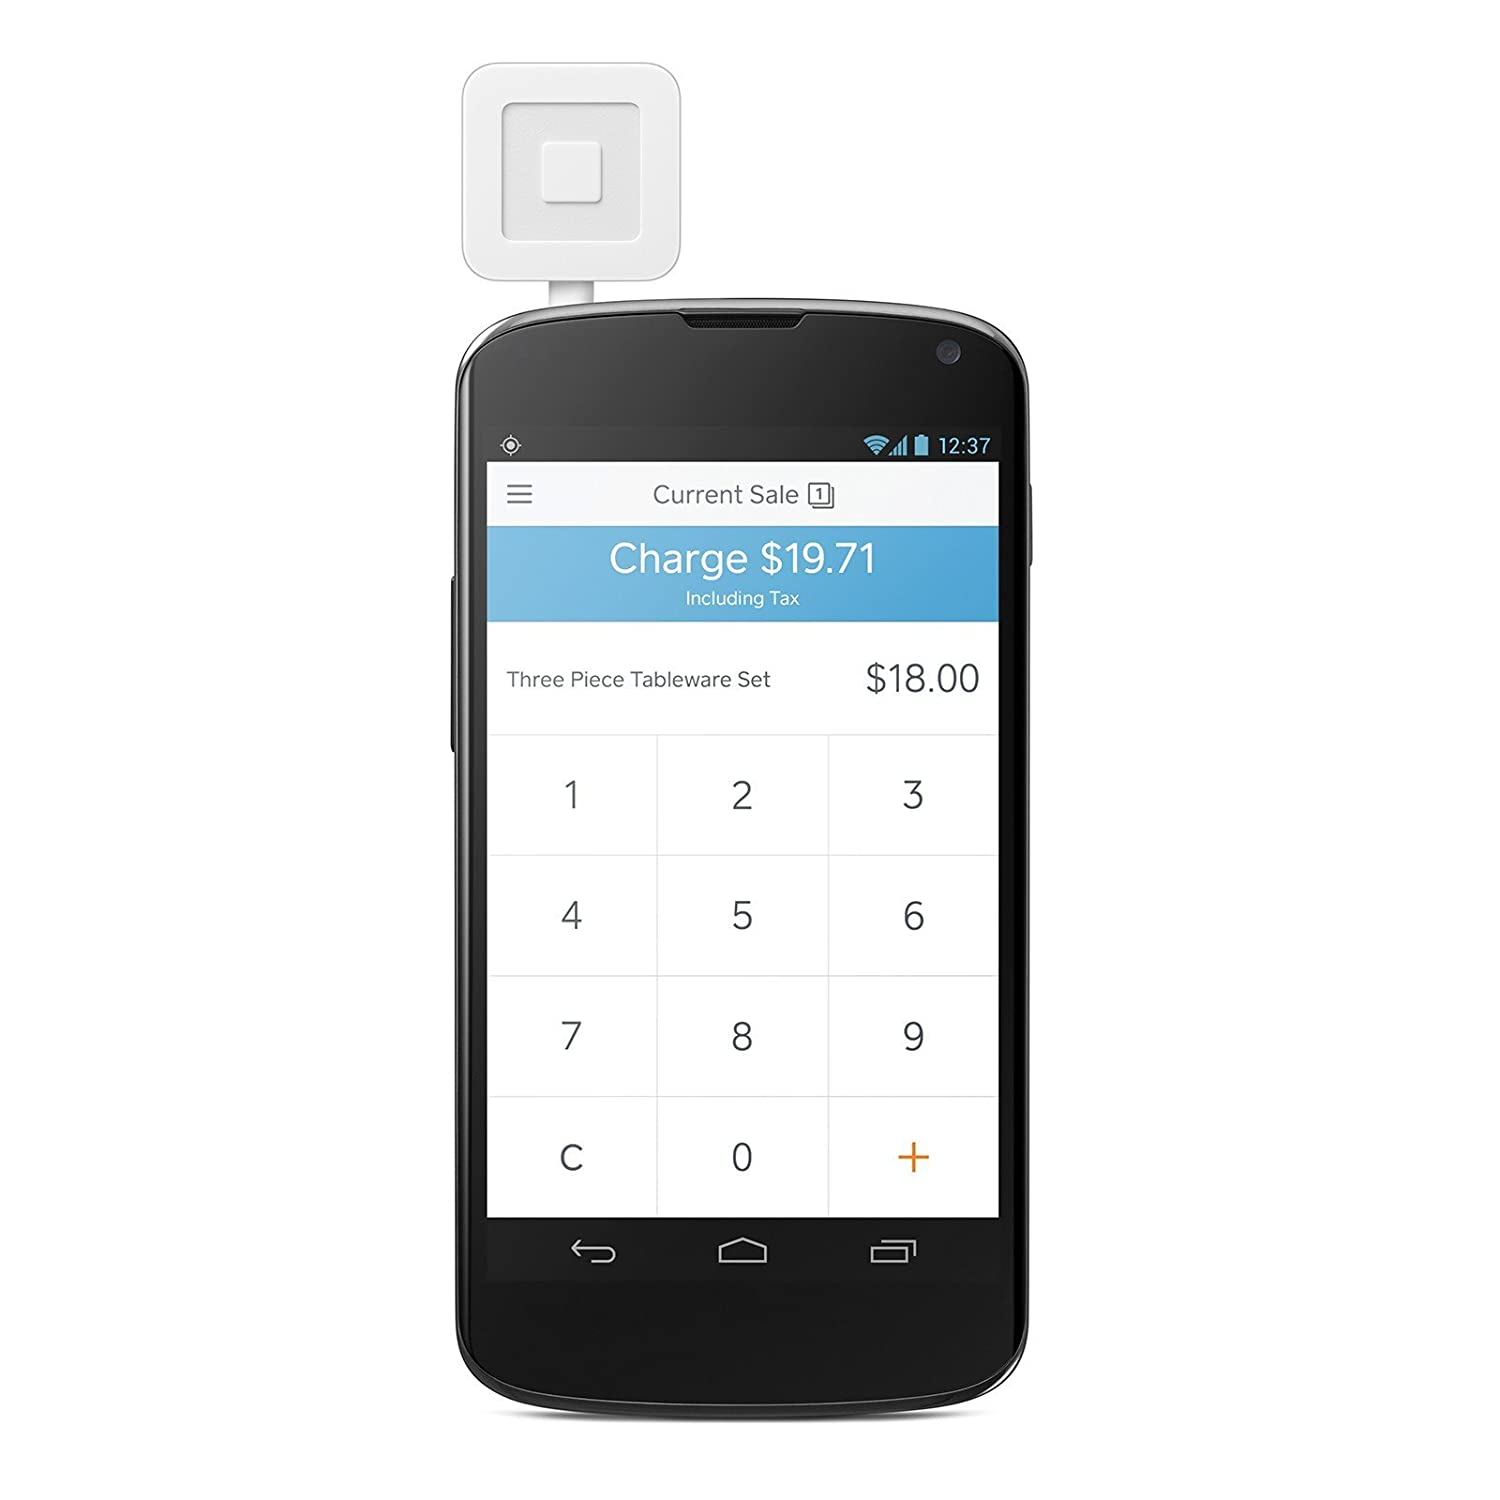 Amazon.com: Square Credit Card Reader for iPhone, iPad and Android ...